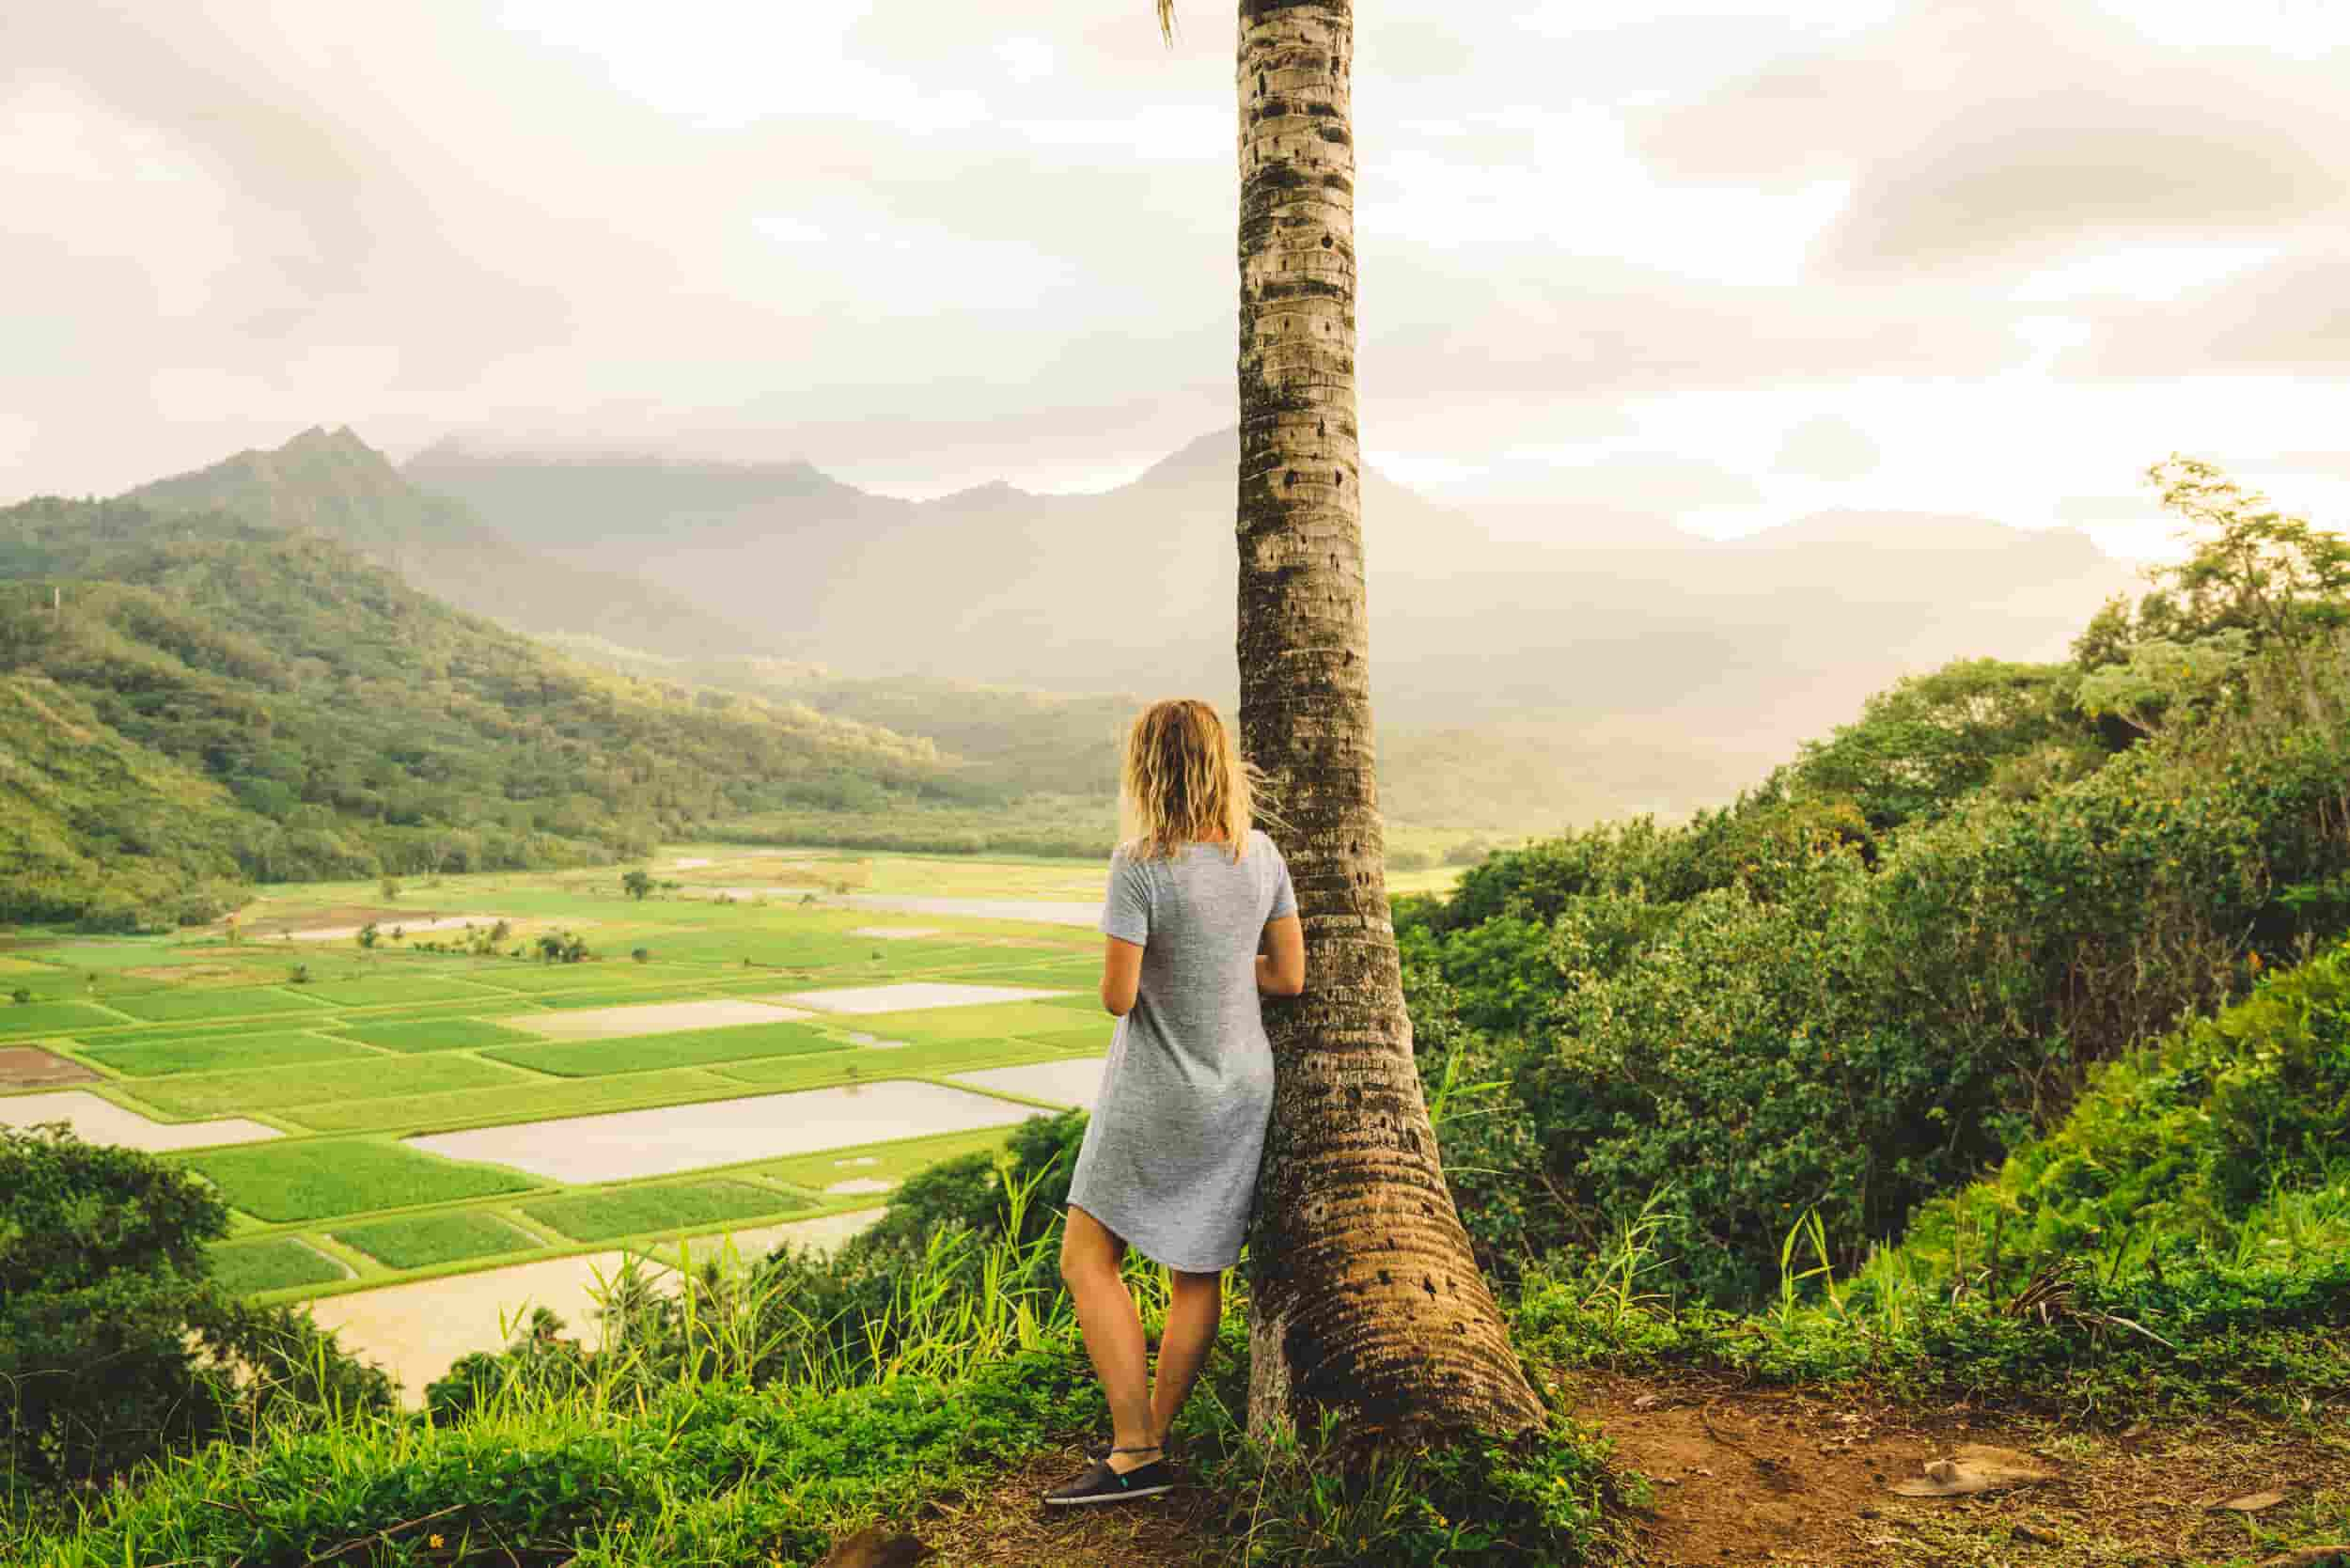 A woman stands by a lone palm tree overlooking lush mountains.